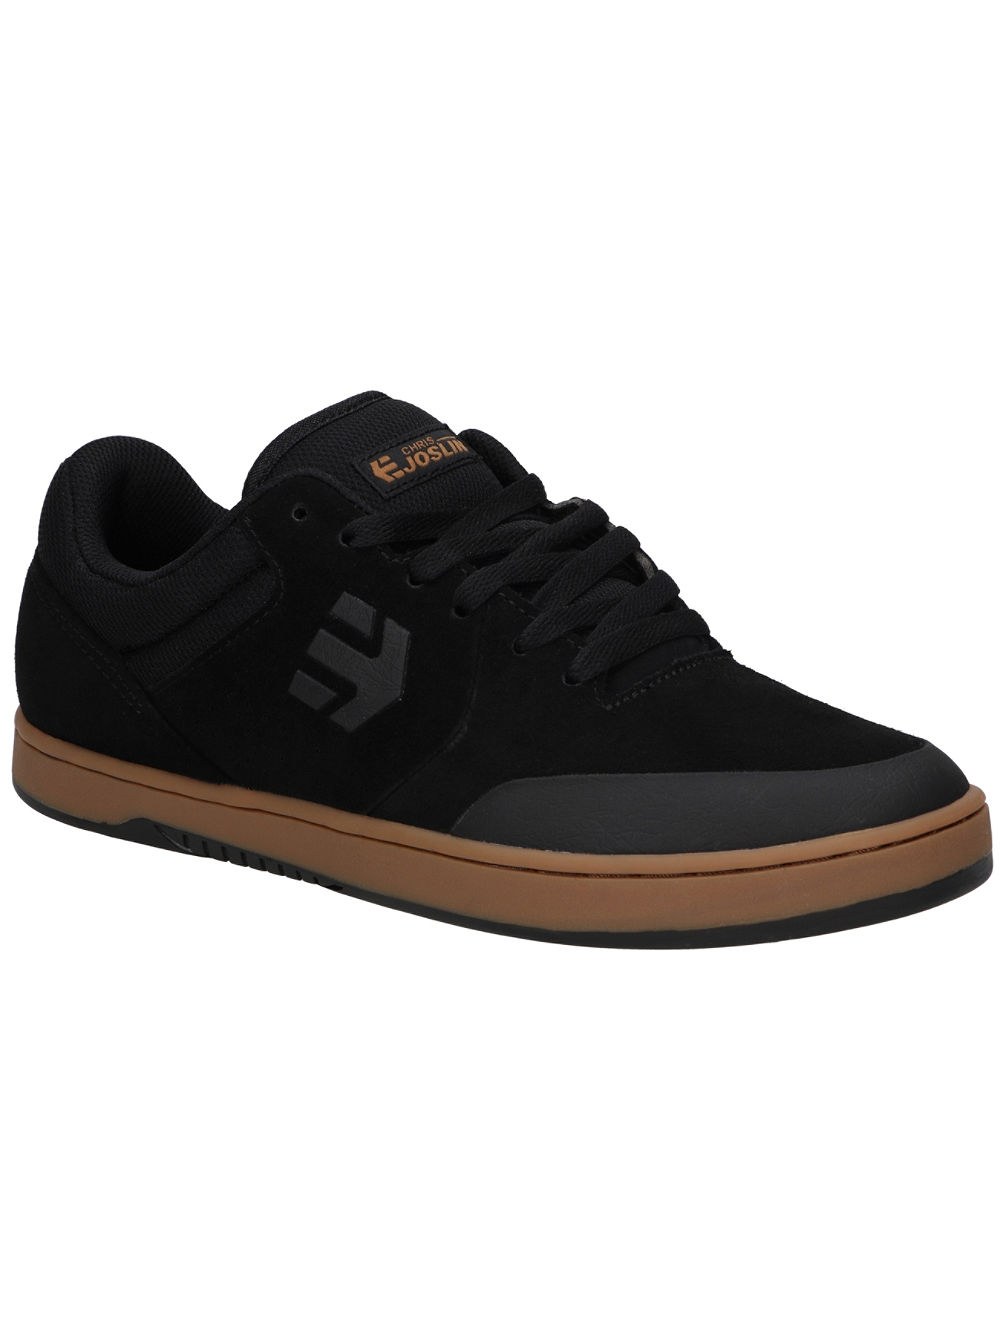 Marana Michelin Joslin Skate Shoes